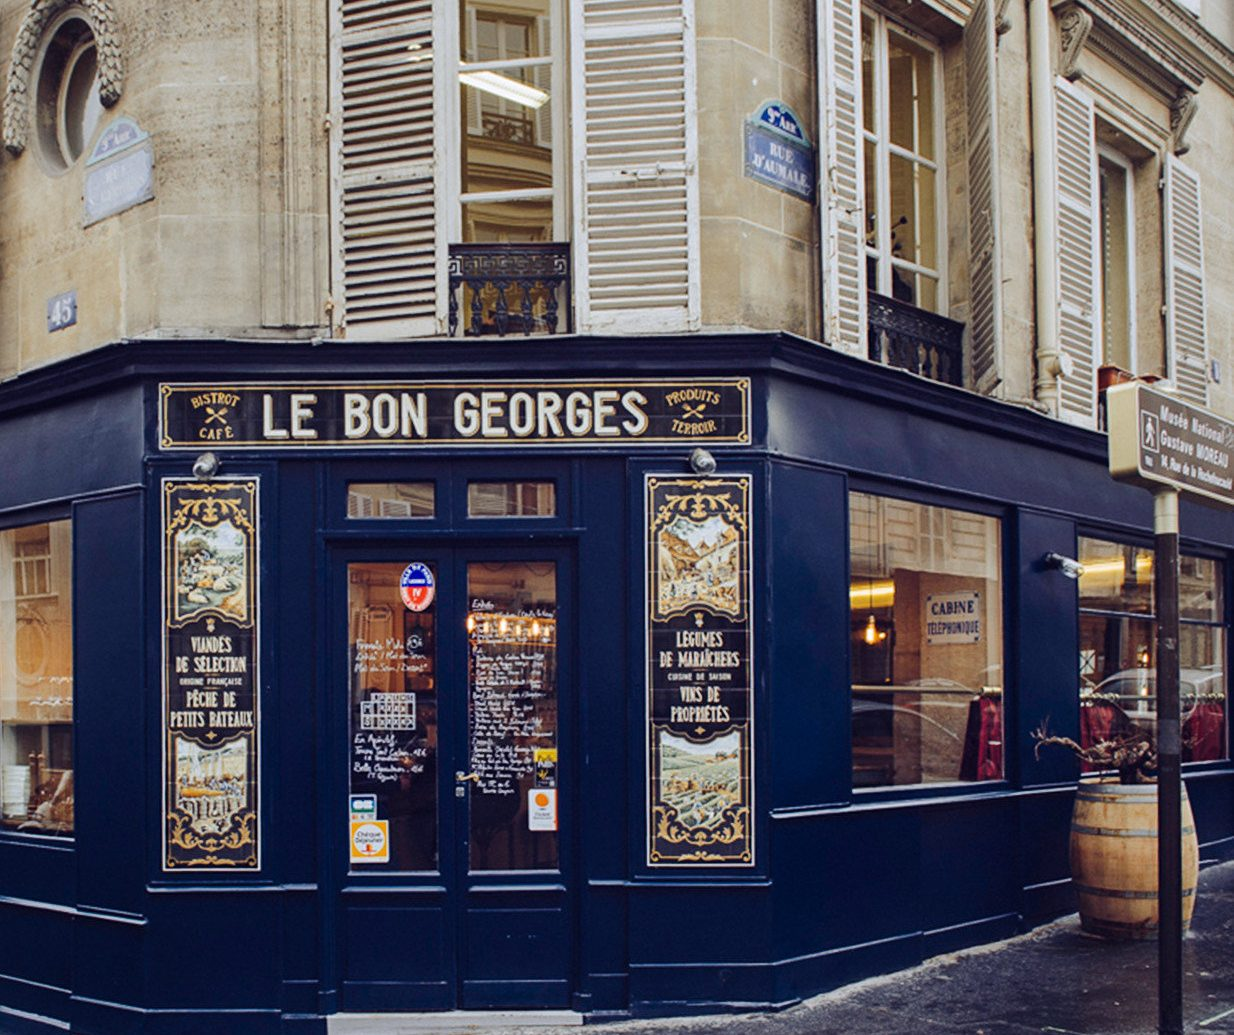 Food + Drink France Paris building outdoor street City window facade retail Business several